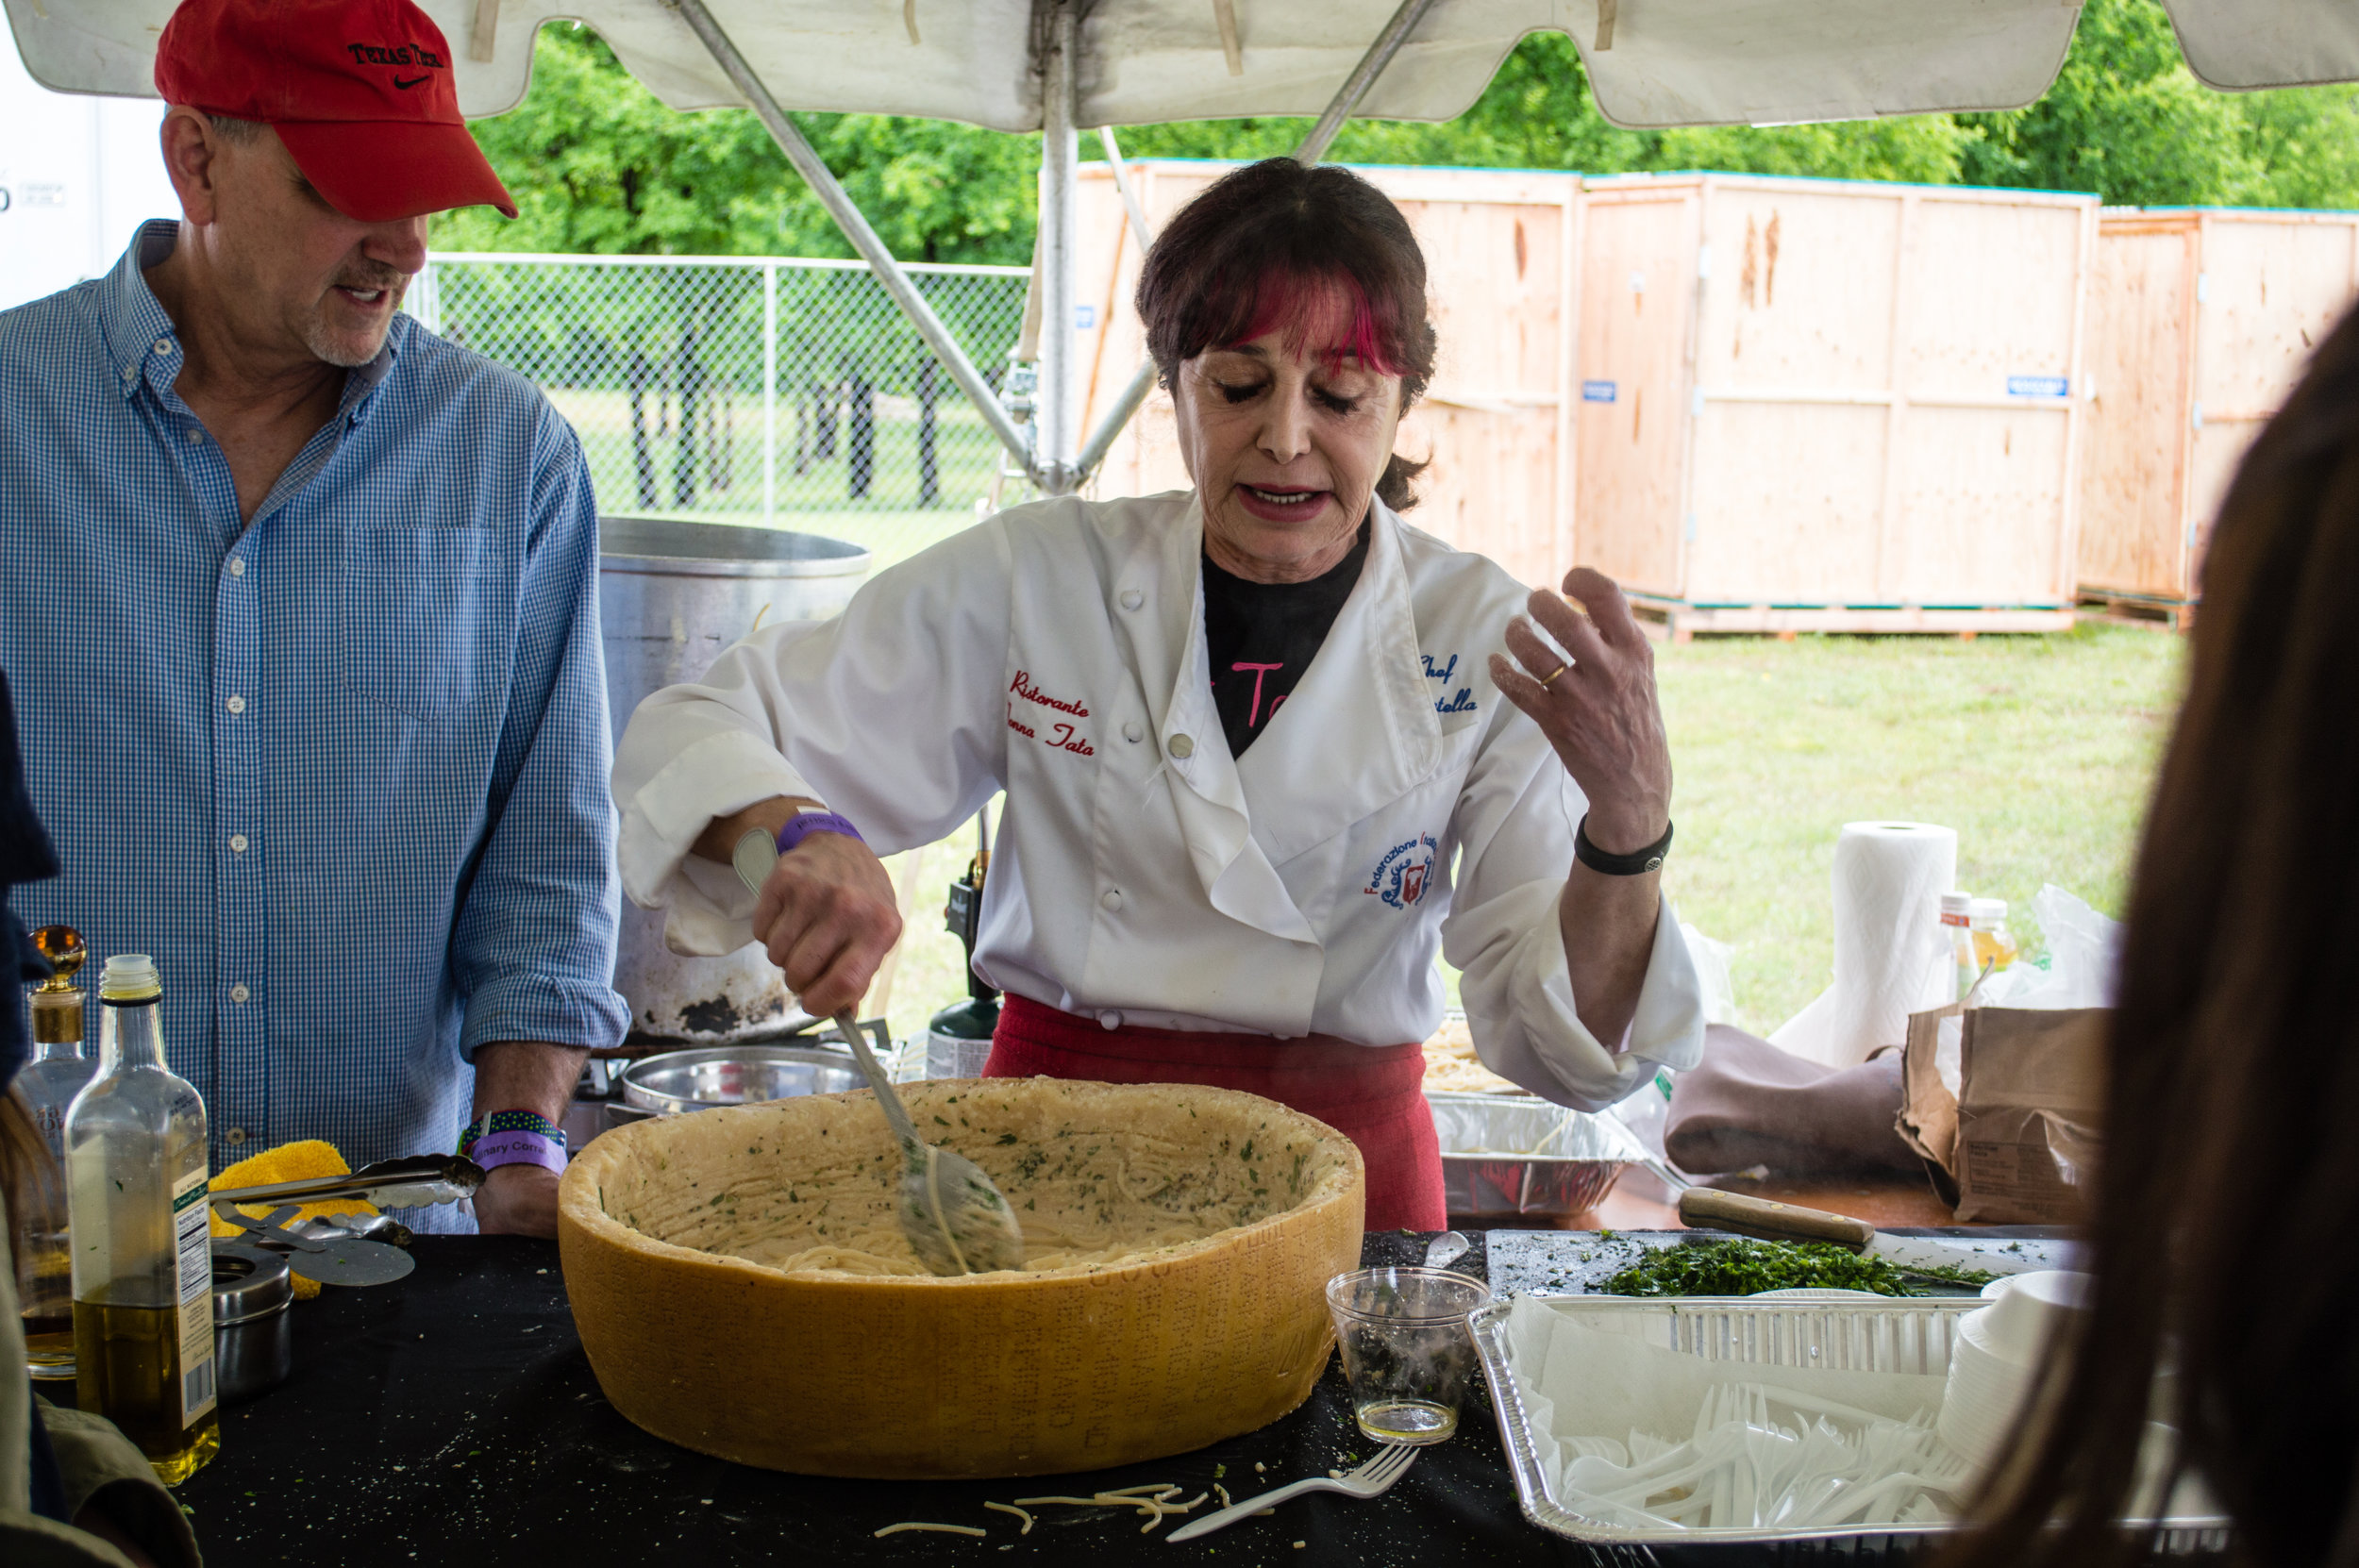 One of the talented chefs demonstrating her method of making pasta inside a wheel of cheese. Photo by Nick Bailey